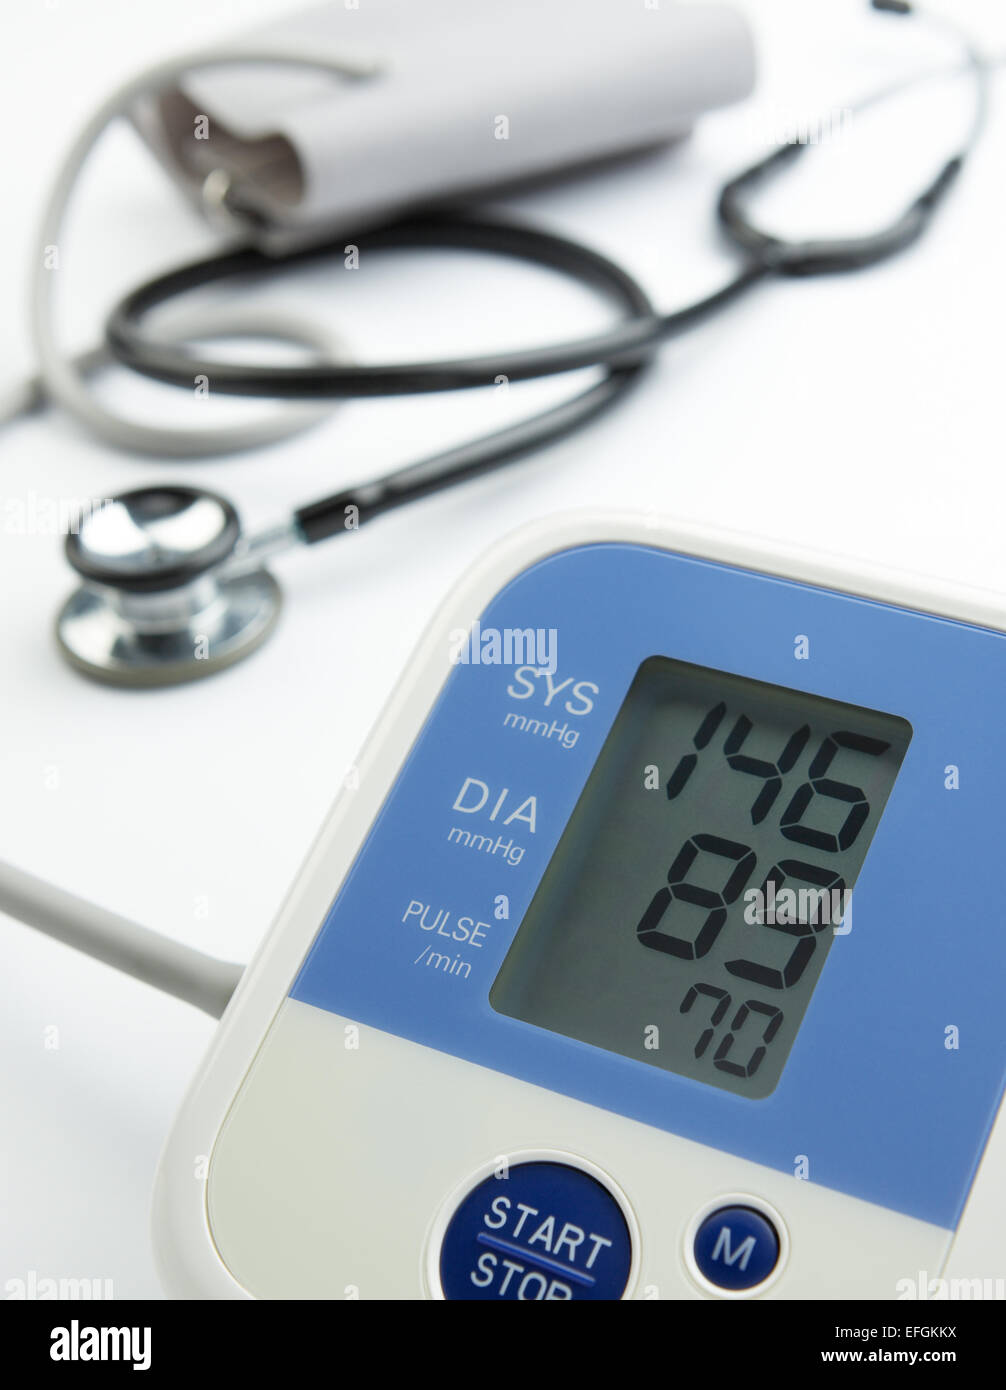 reading on the blood pressure gauge shows hypertension - Stock Image